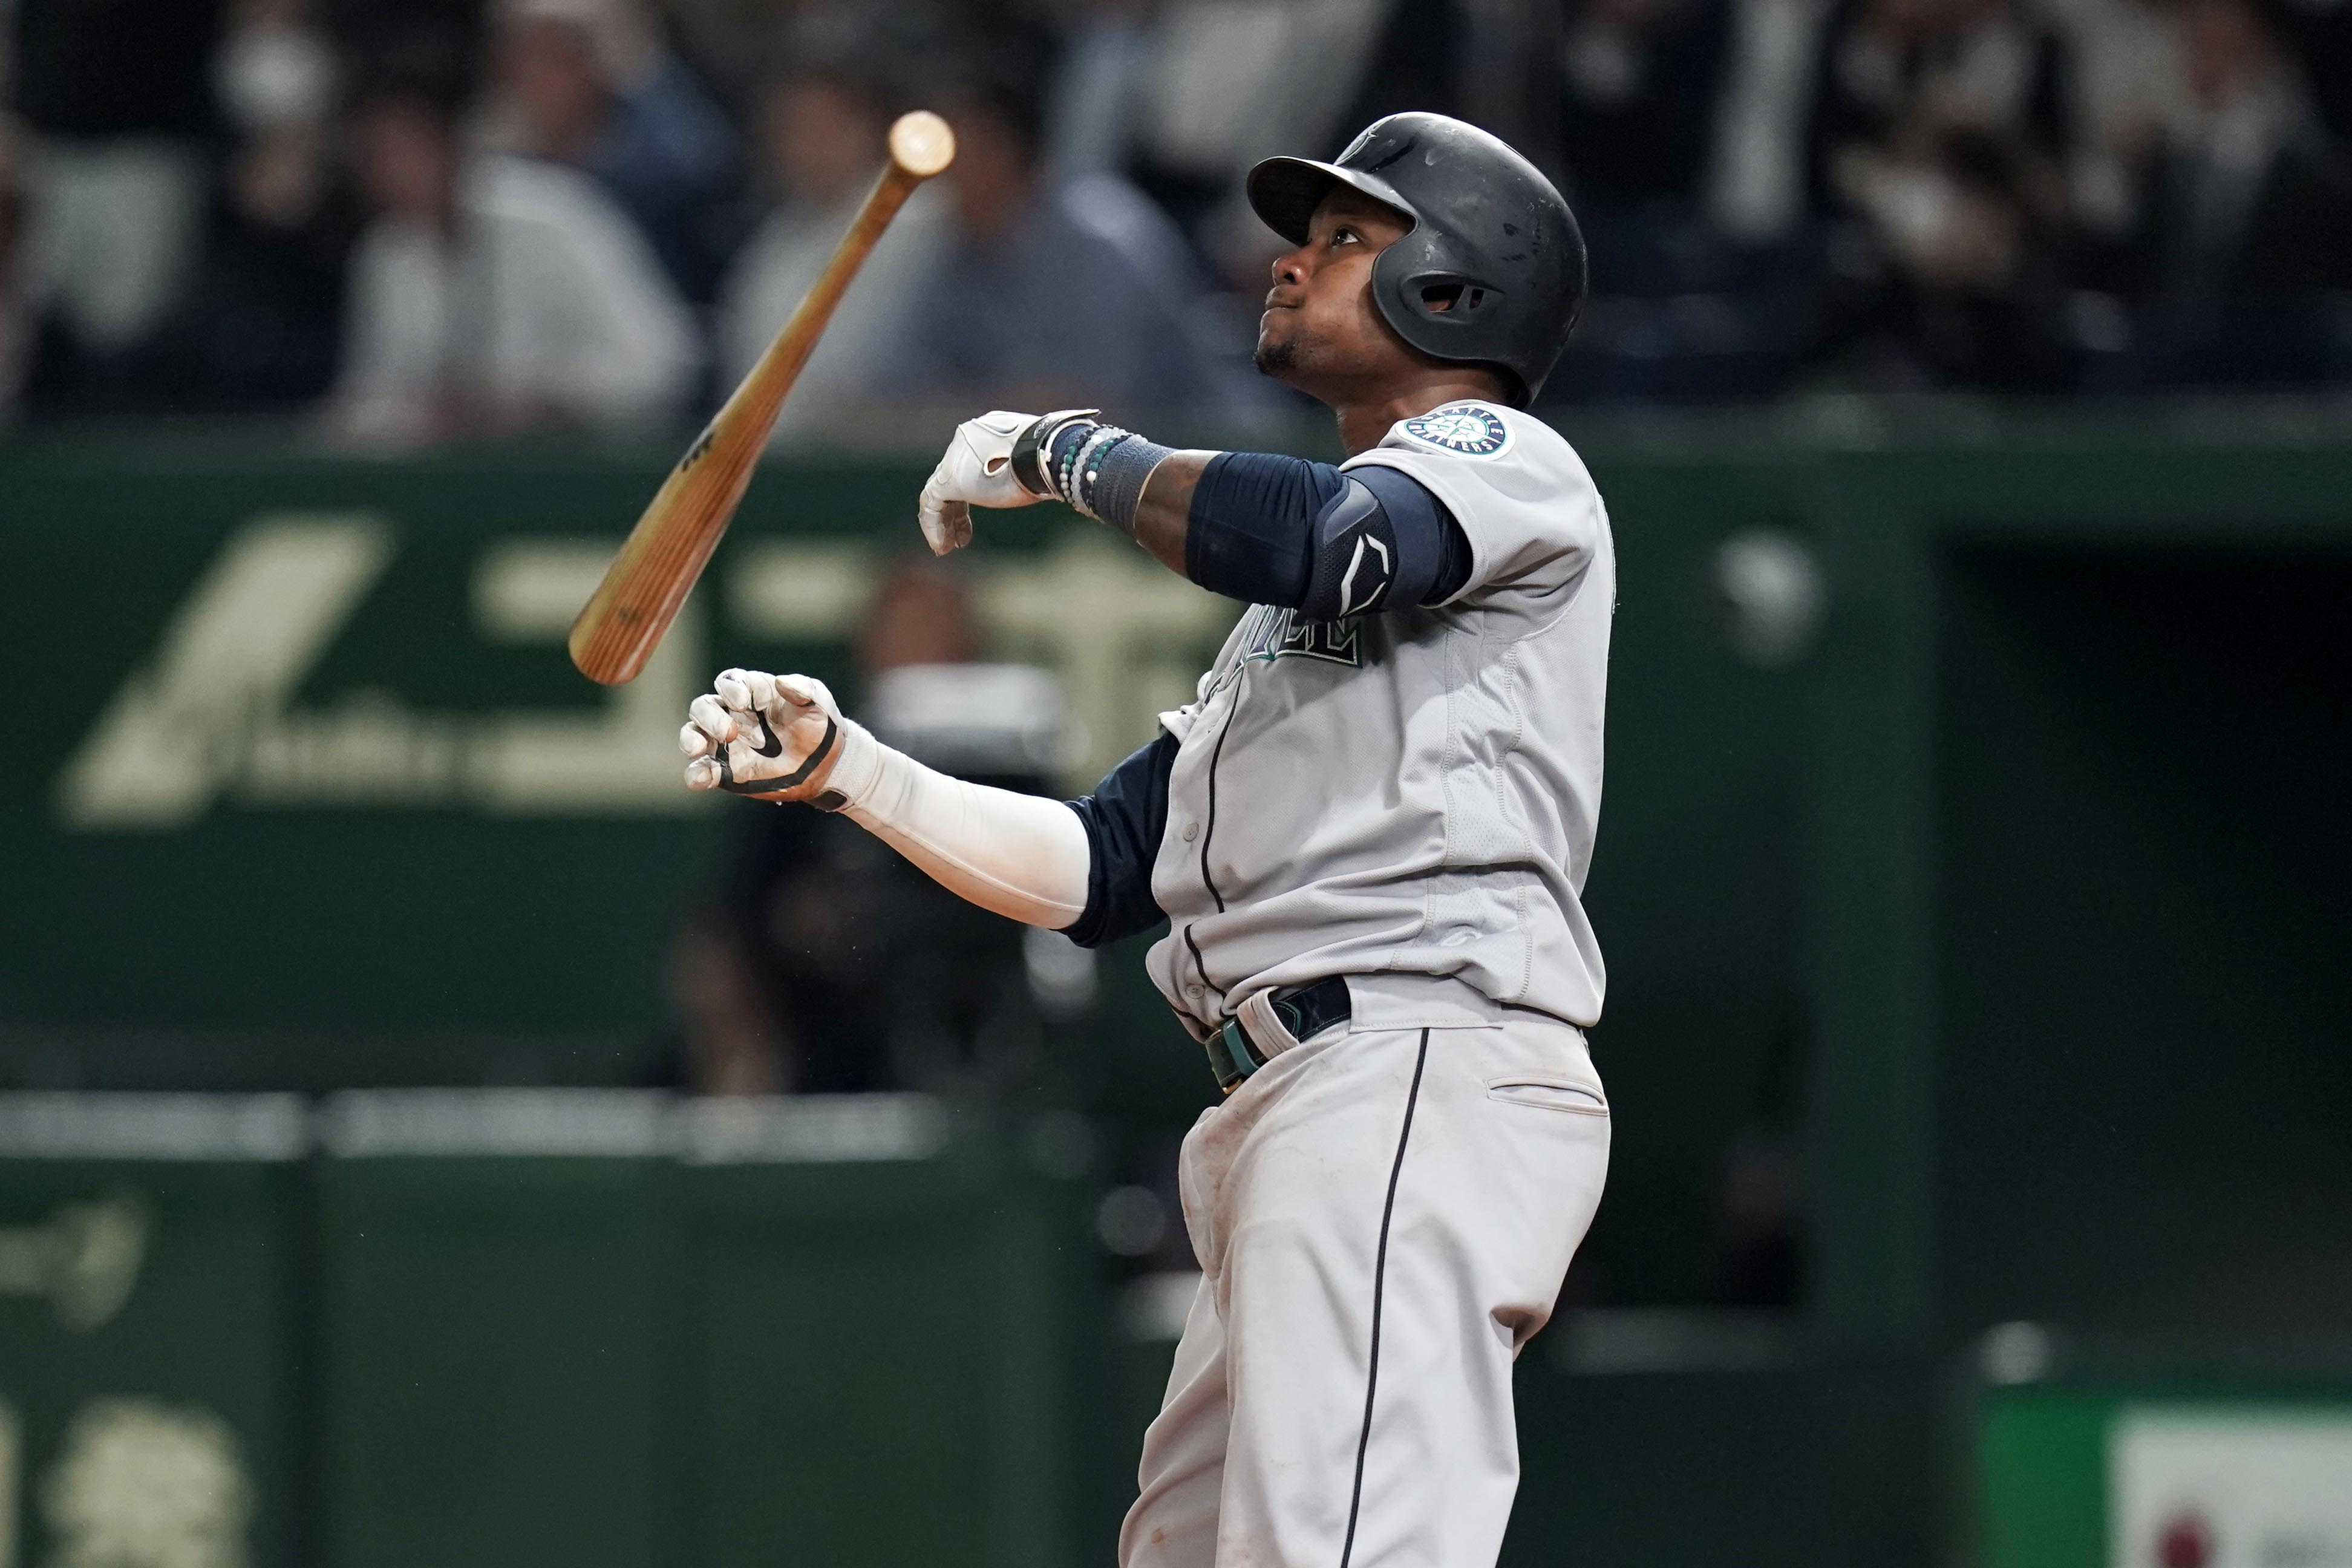 TOKYO, JAPAN - MARCH 20: Infielder Tim Beckham #1 of the Seattle Mariners hits a two-run homer to make it 9-4 in the 5th inning during the game between Seattle Mariners and Oakland Athletics at Tokyo Dome on March 20, 2019 in Tokyo, Japan. (Photo by Masterpress/Getty Images)